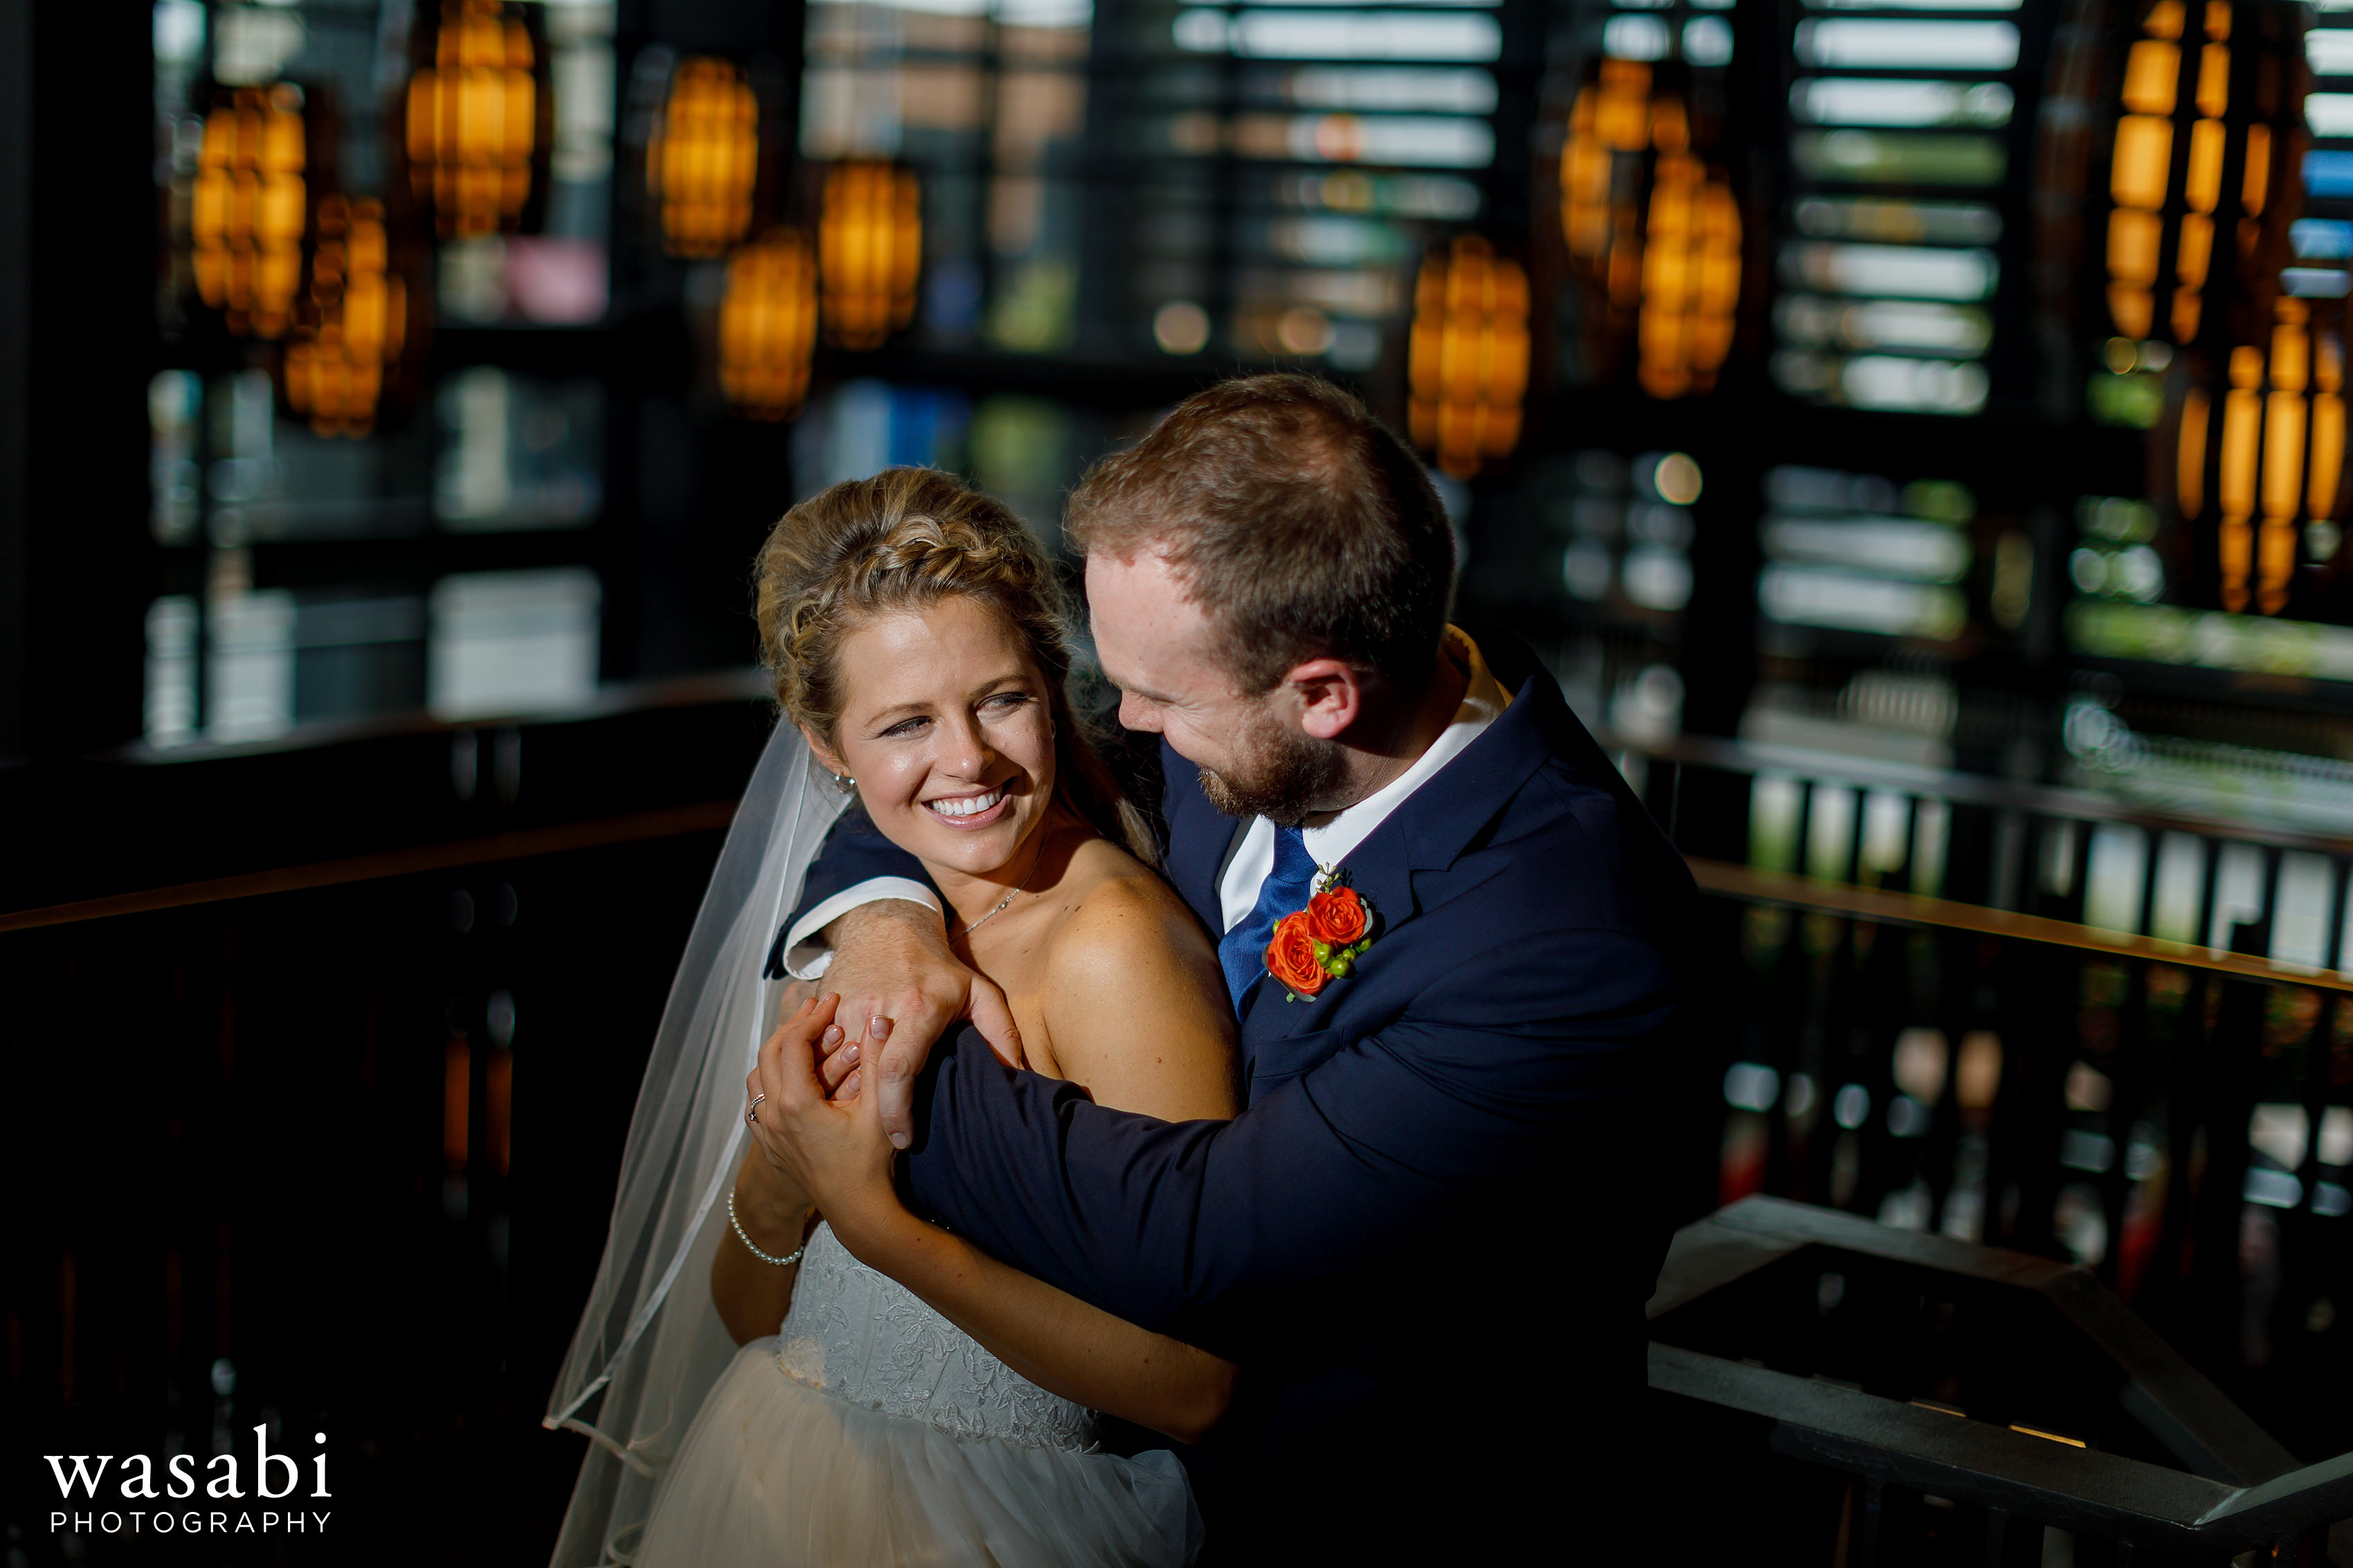 Bride and groom pose for a portrait at The Knickerbocker in downtown Grand Rapids